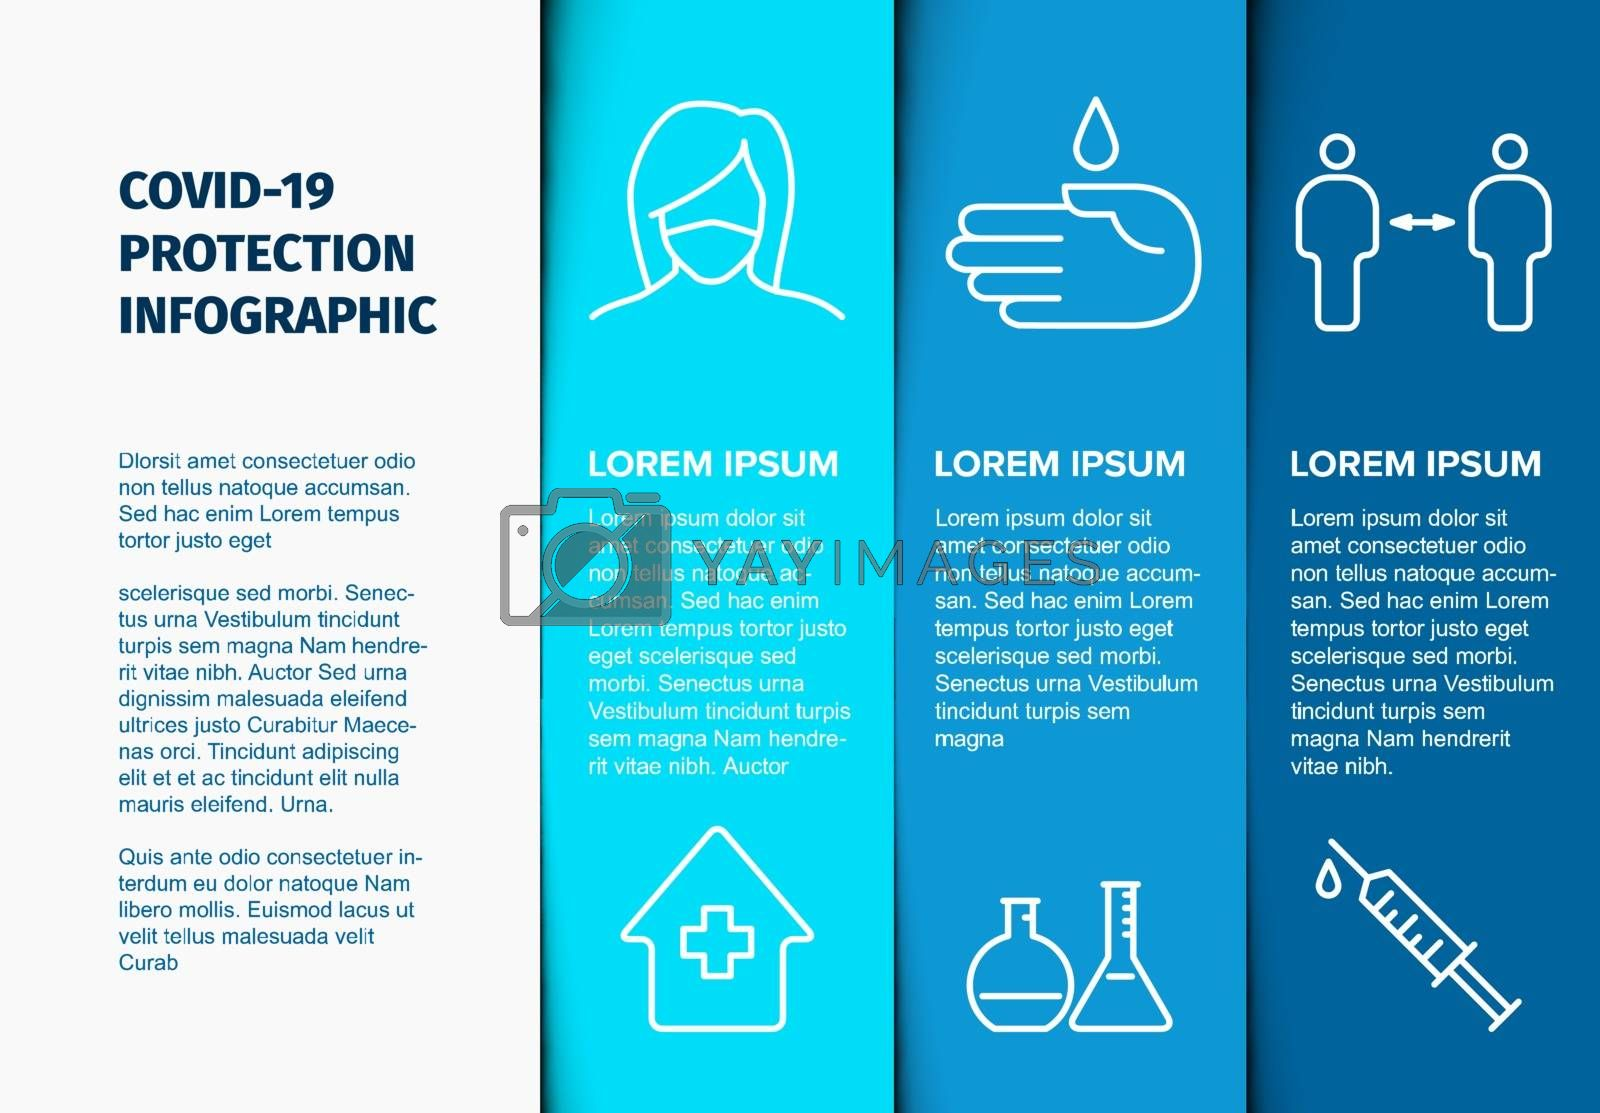 Covid-19 prevention infographic template - mask, people distance, washing hands, stay at home